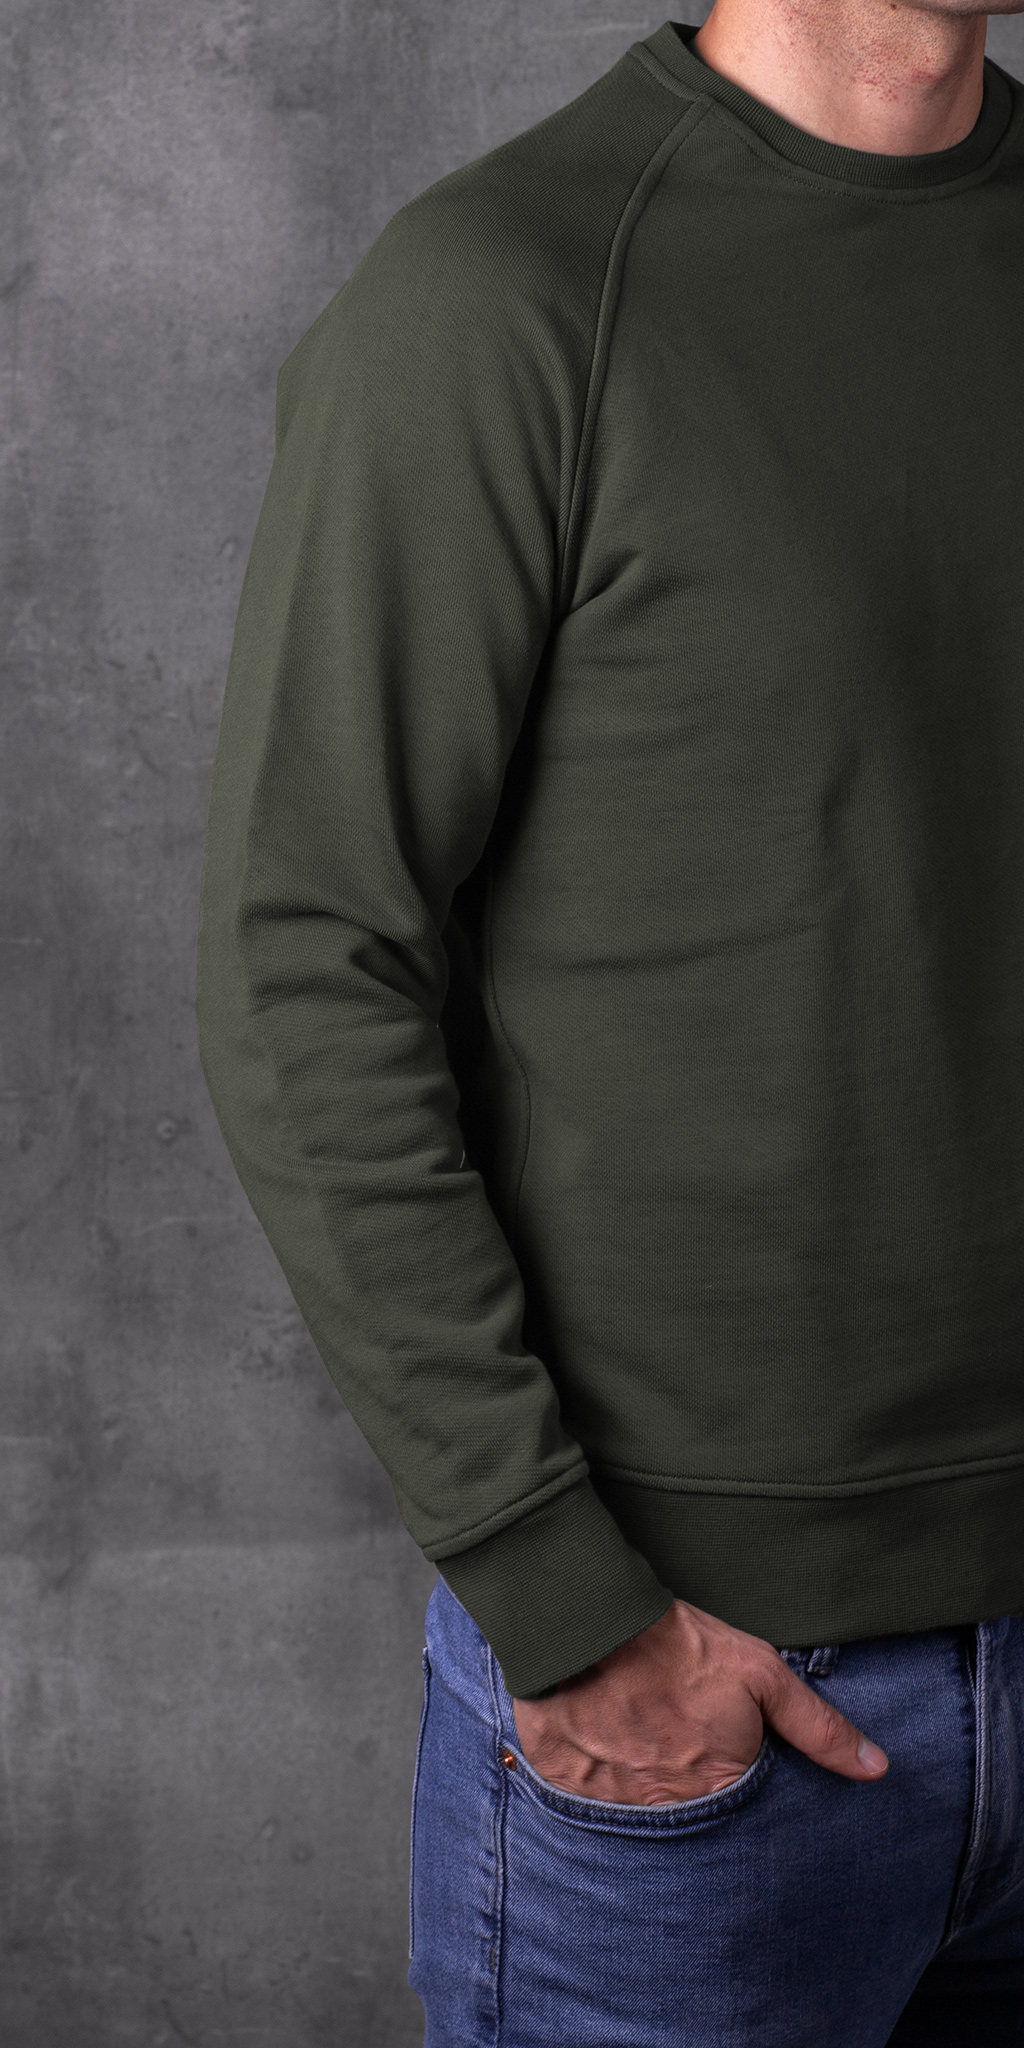 SWEATSHIRT 01.01 GREEN SUDADERA 01.01 VERDE The Seëlk 7